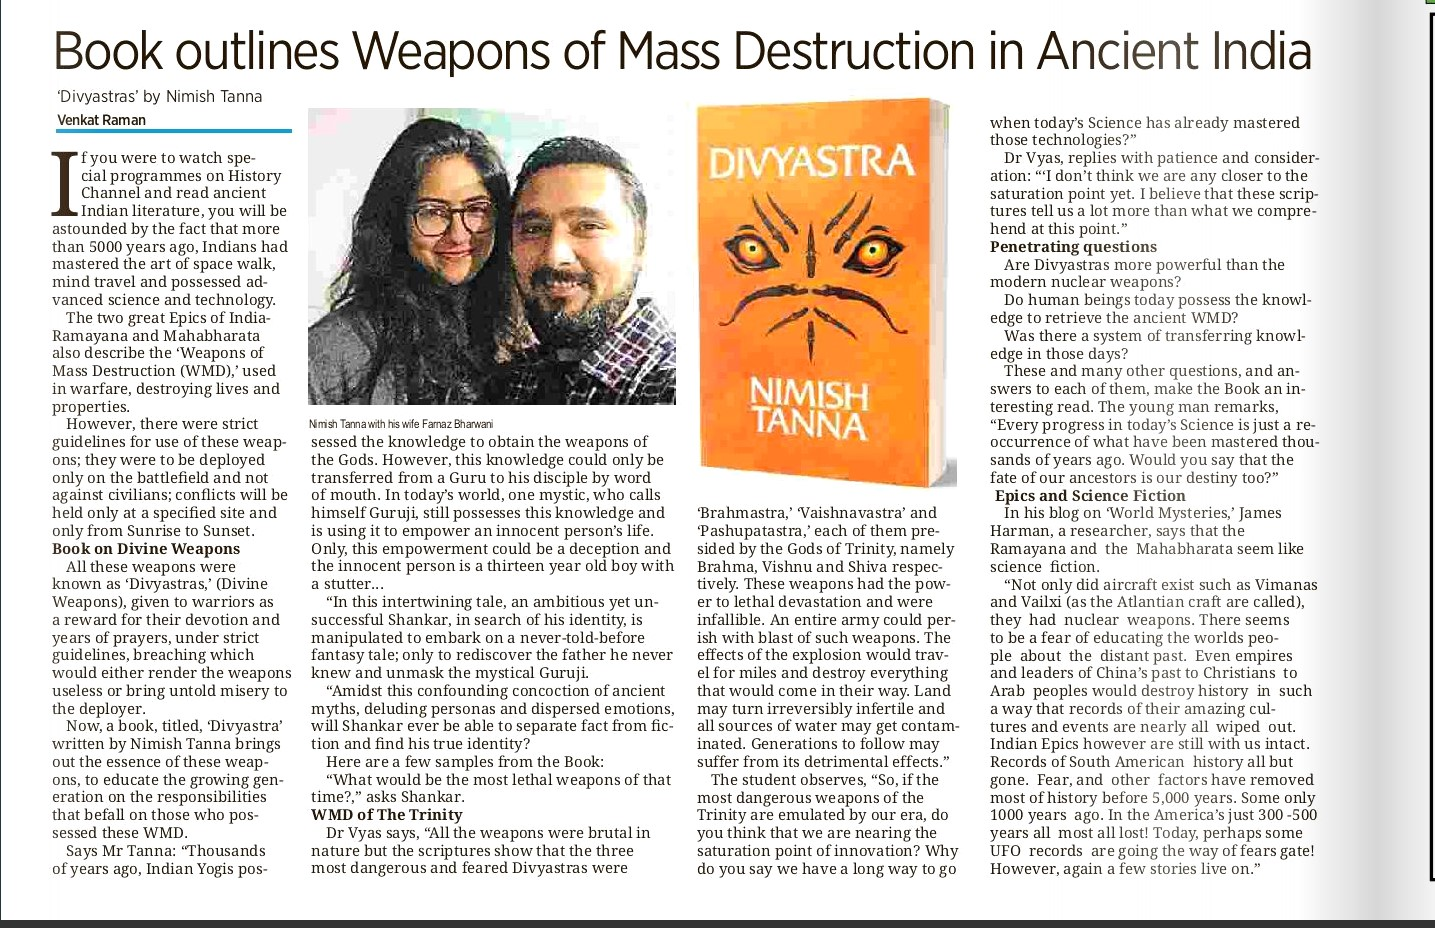 The Indian NewsLink Article_15 Feb